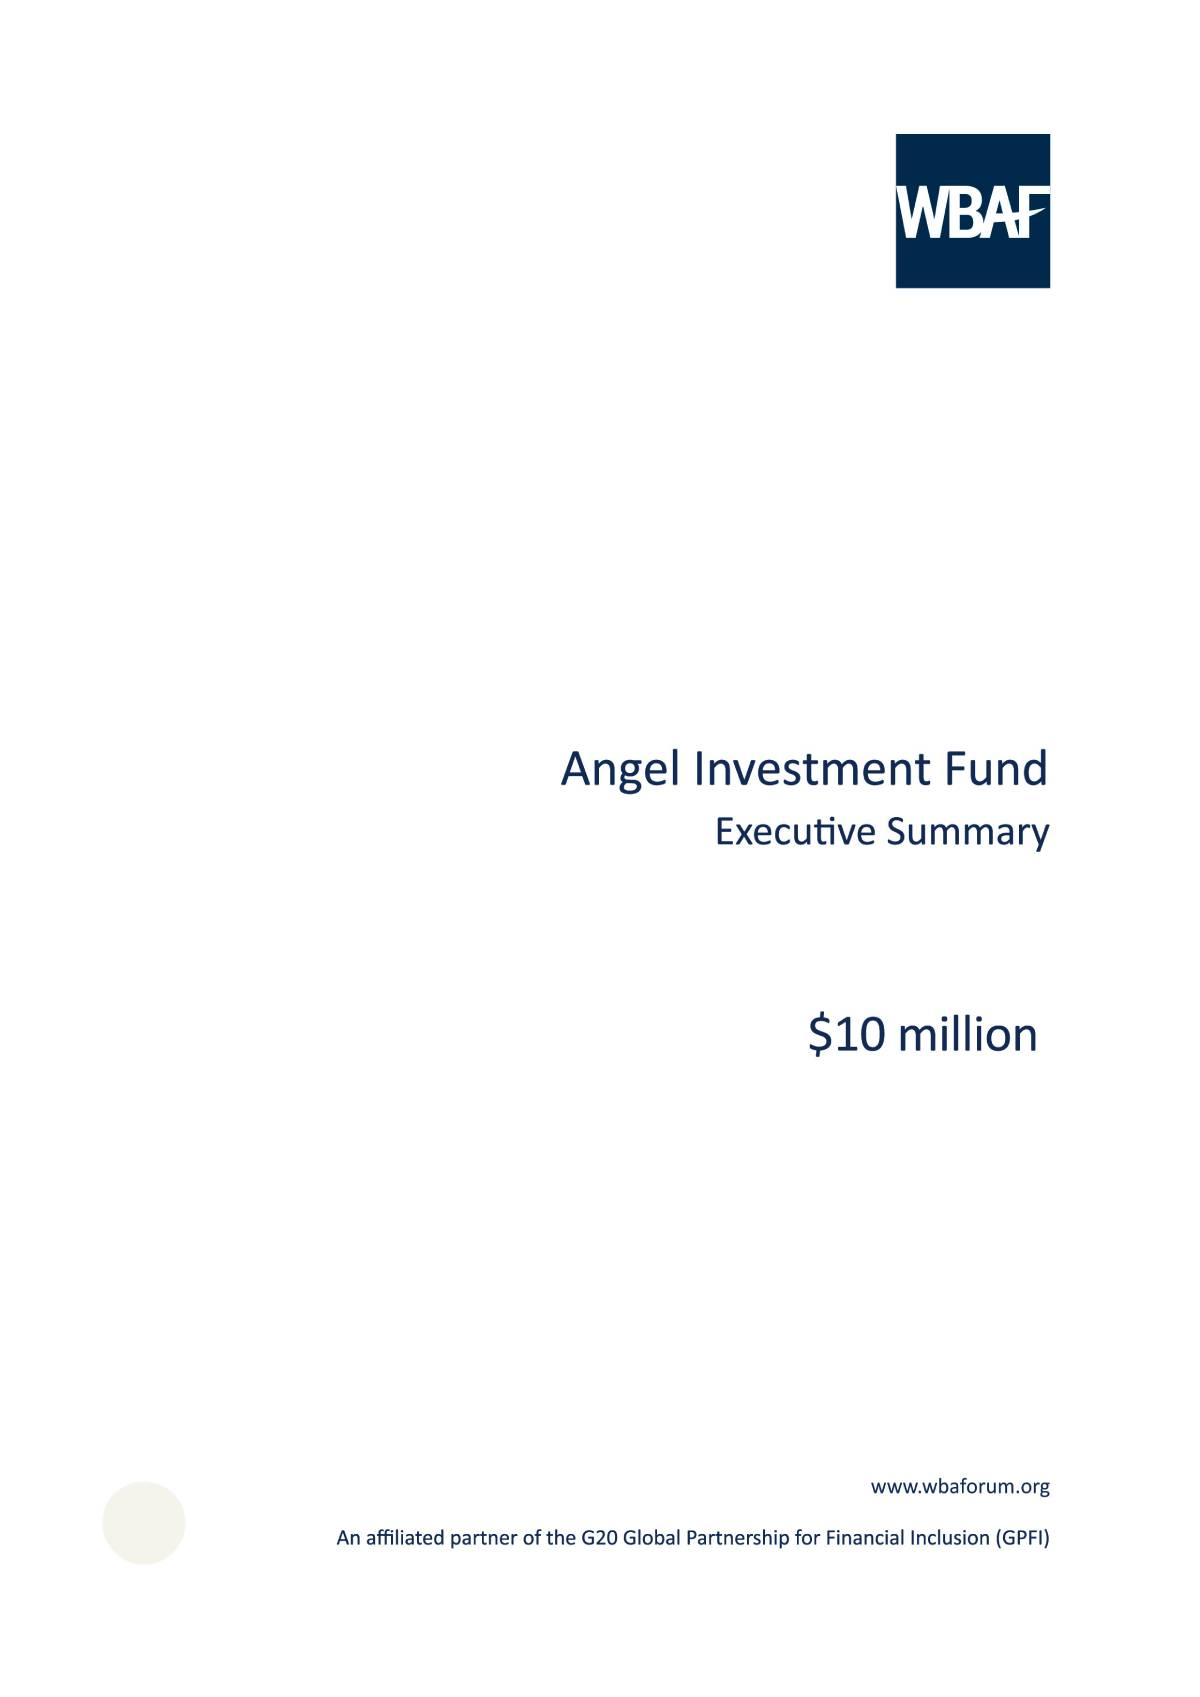 Angel Investment Fund - Executive Summary